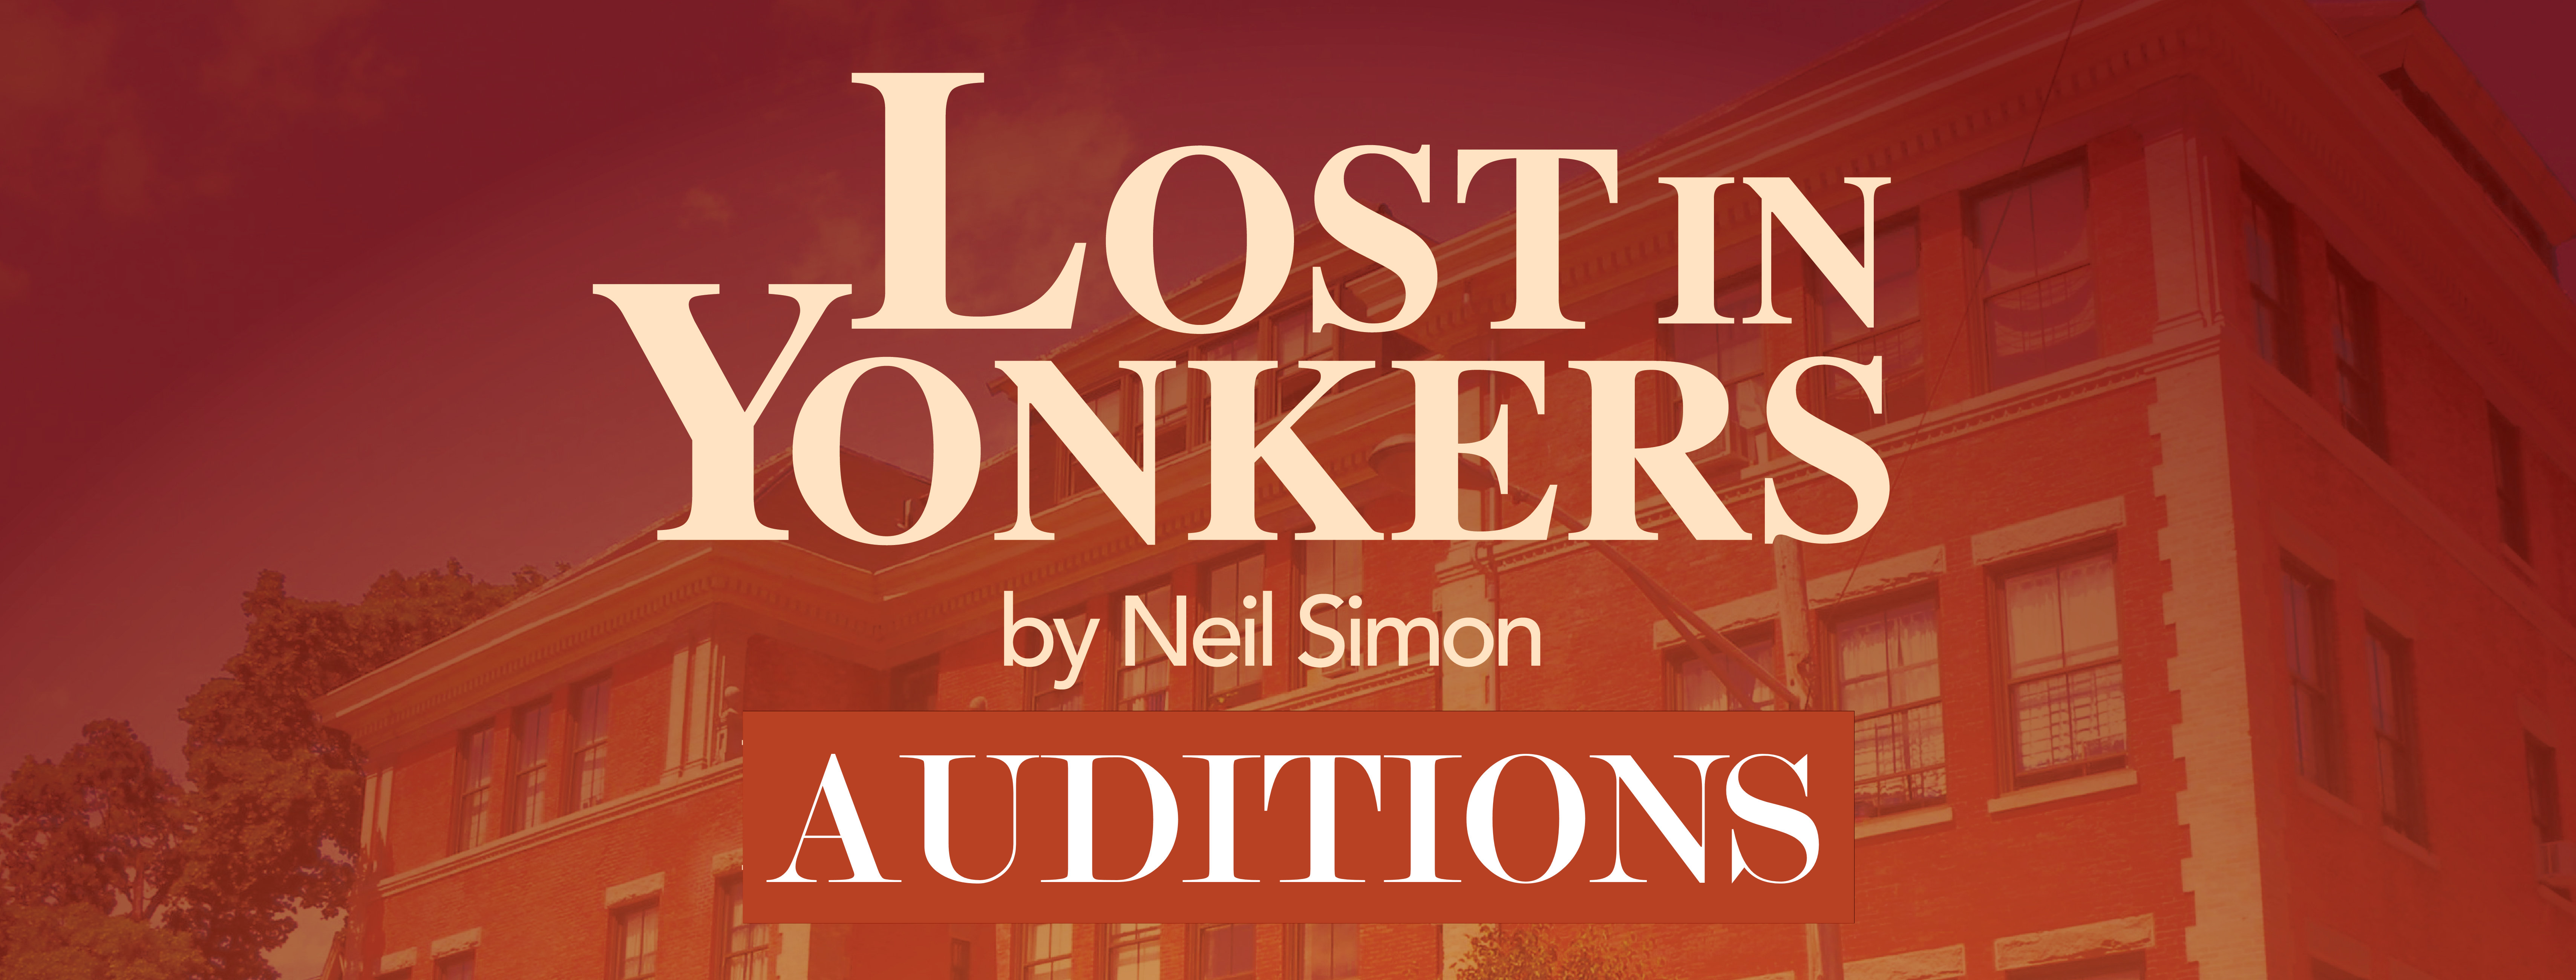 Lost in Yonkers Auditions